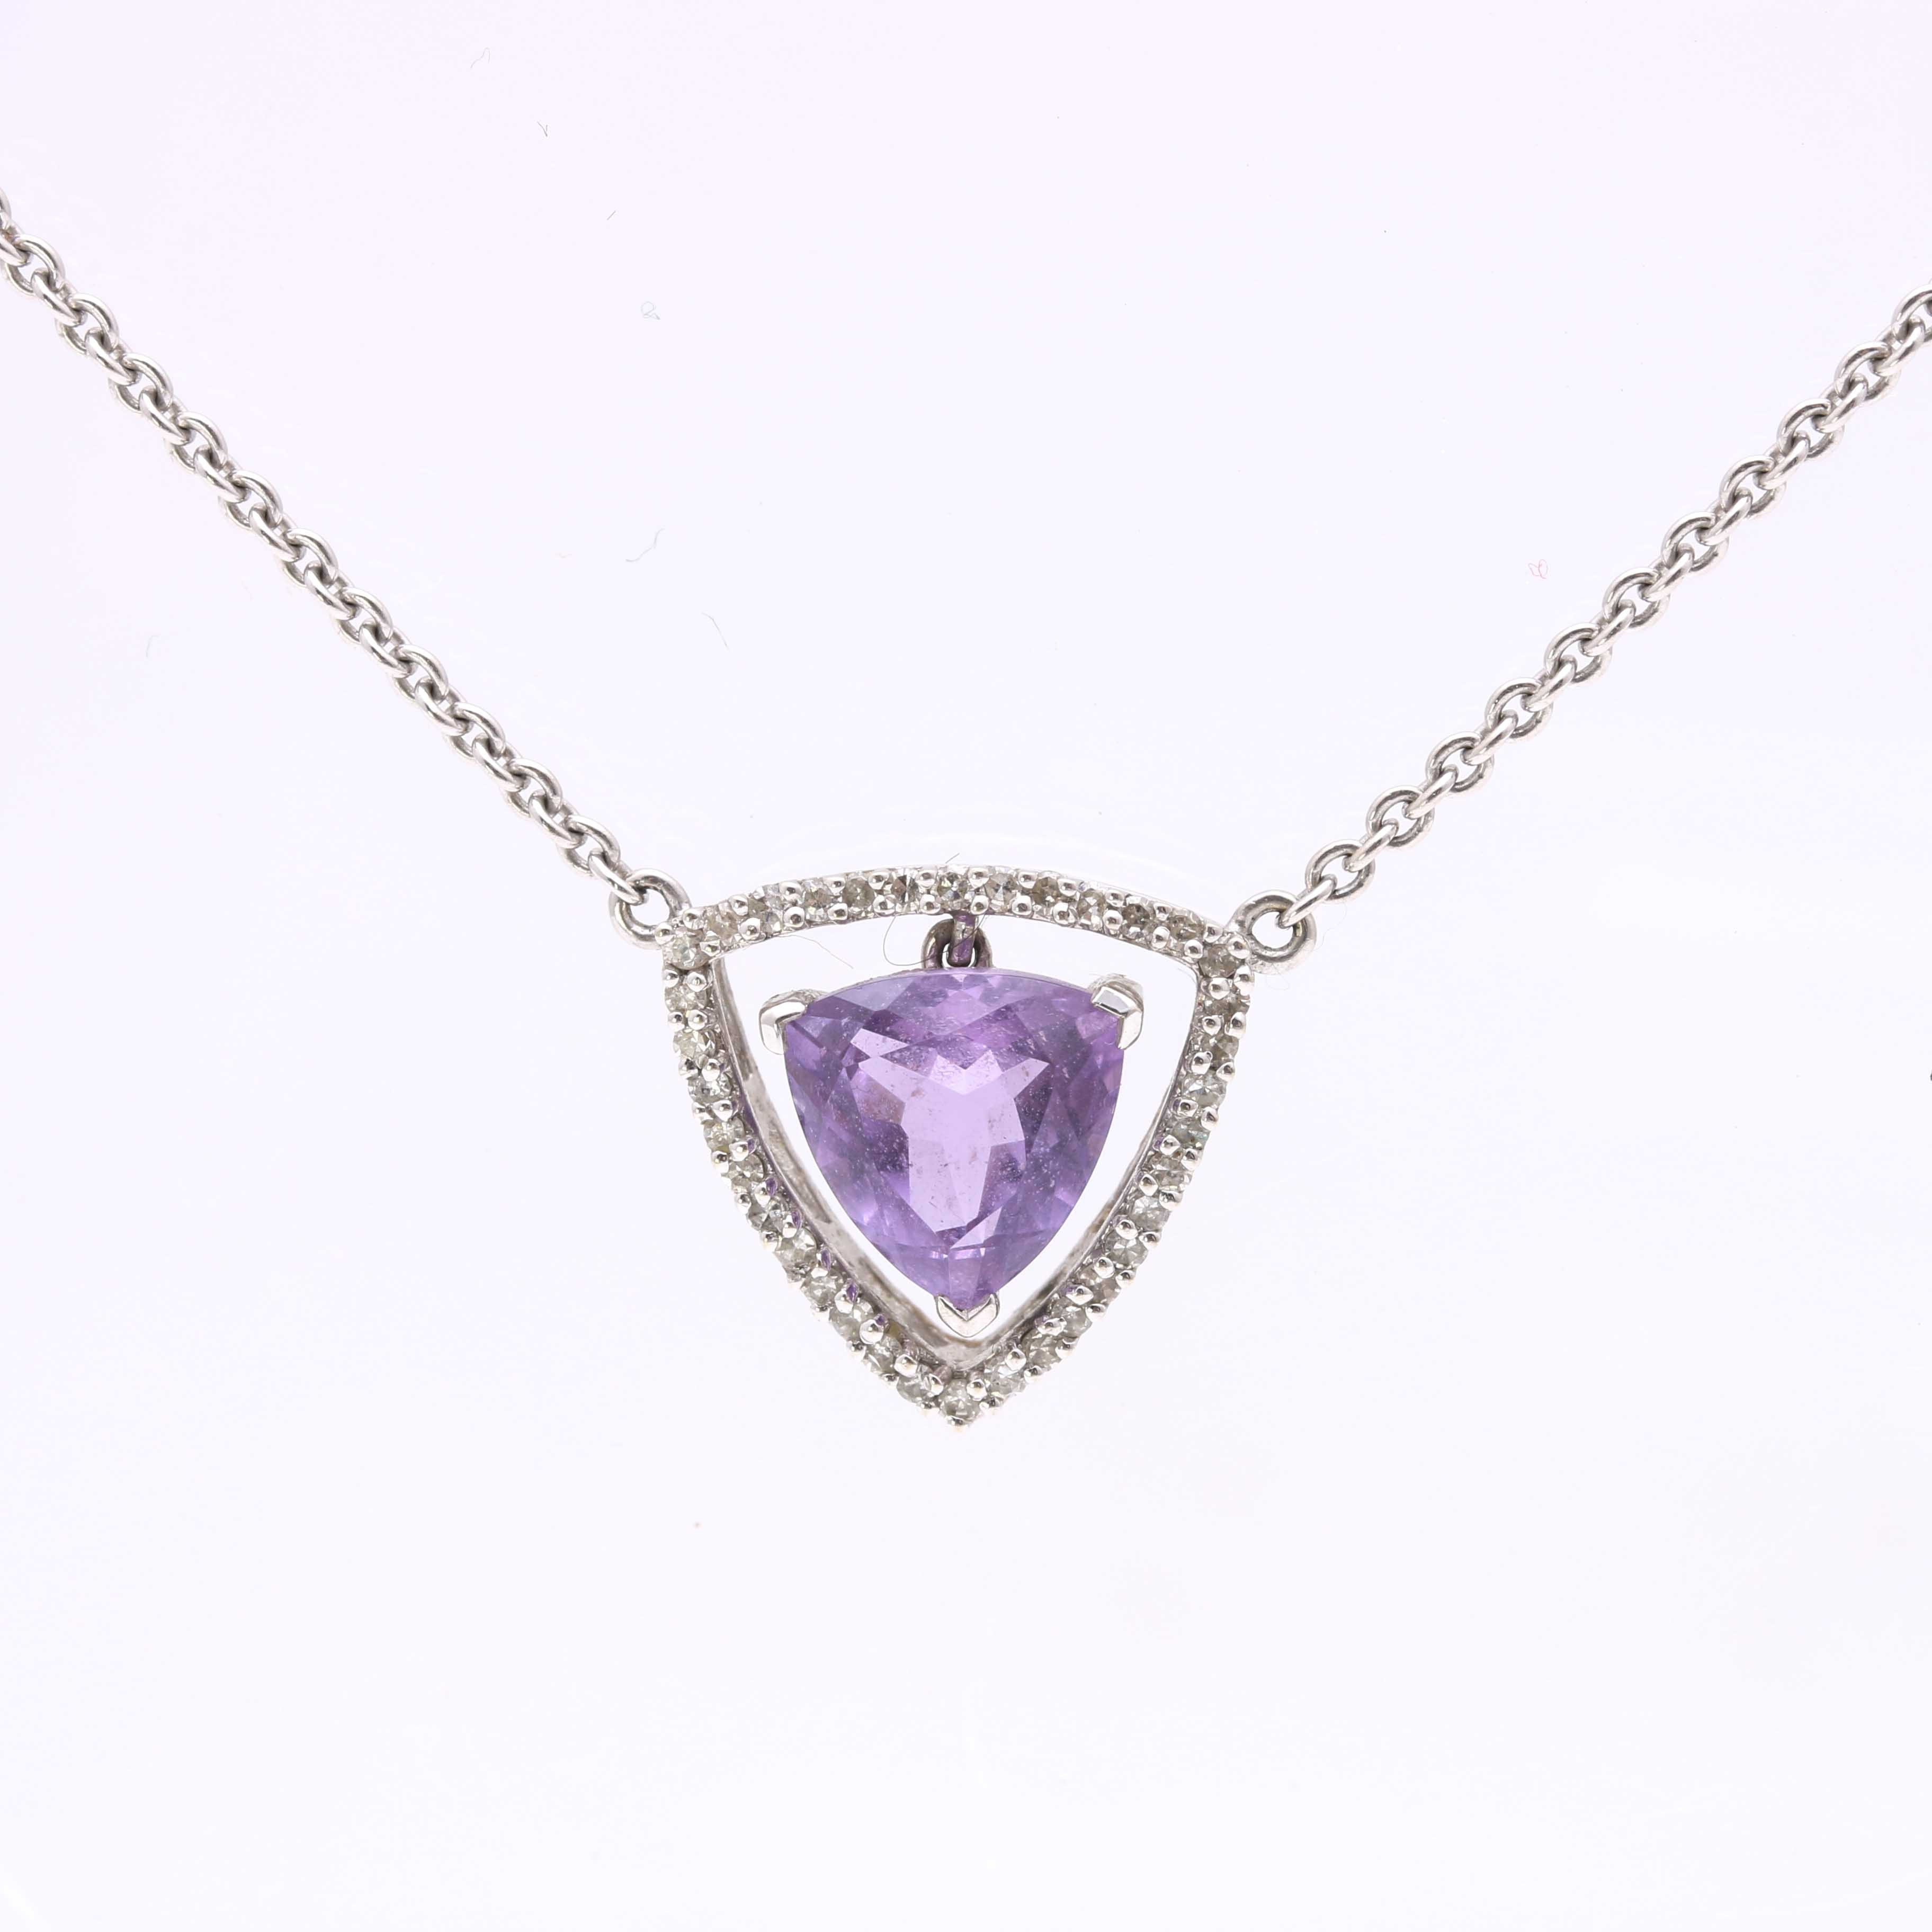 14K White Gold Amethyst and Diamond Necklace